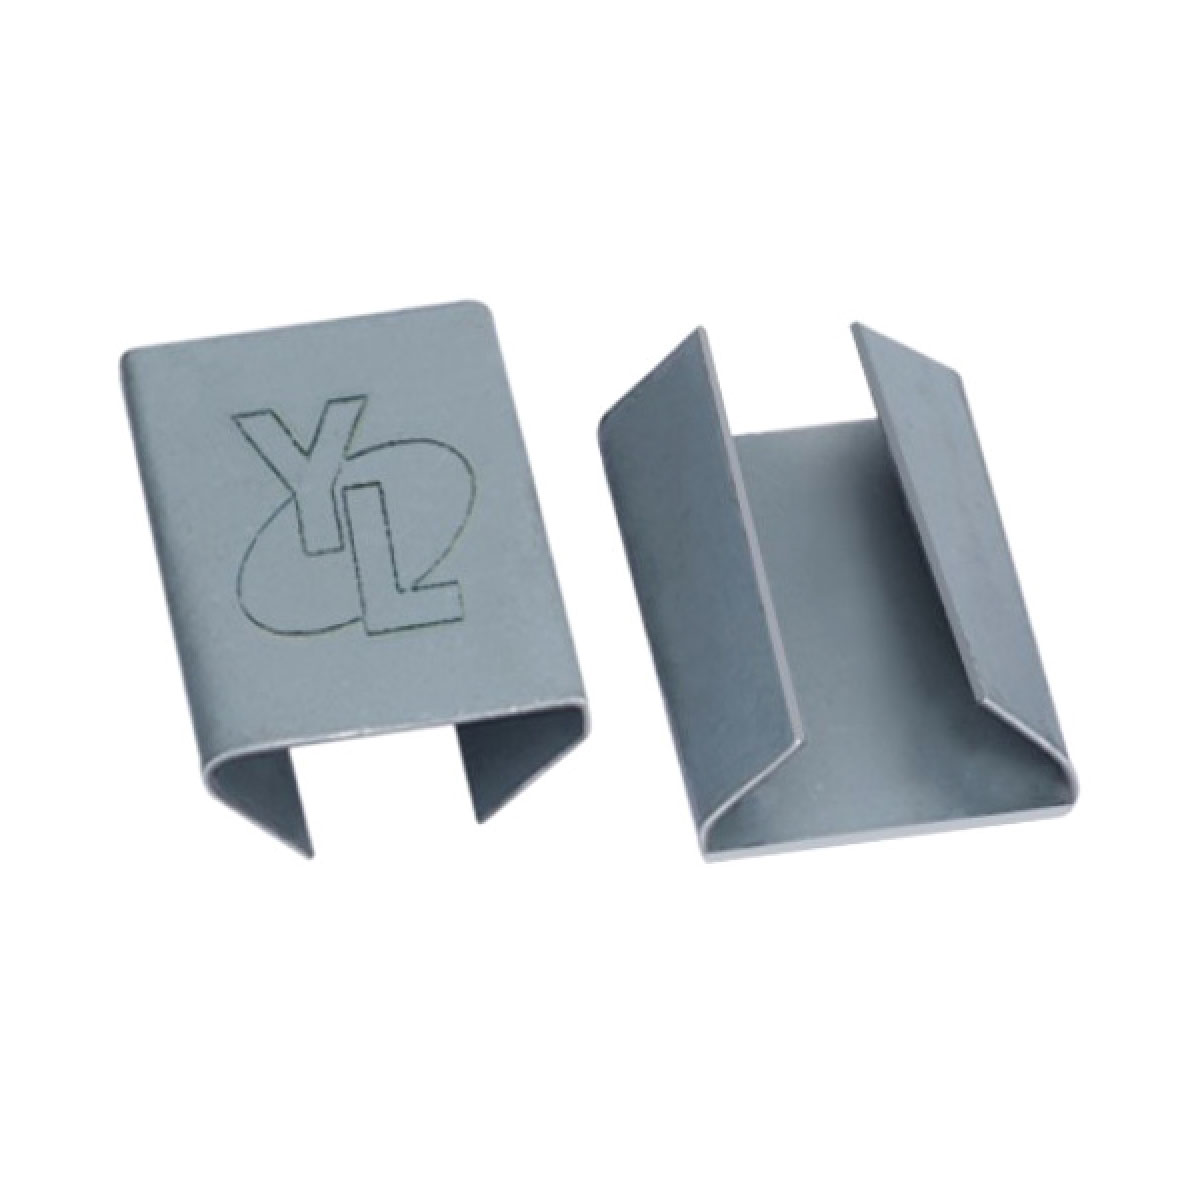 C-type Strapping Seals for Manual Strapping (16mm / 19mm / 32mm)